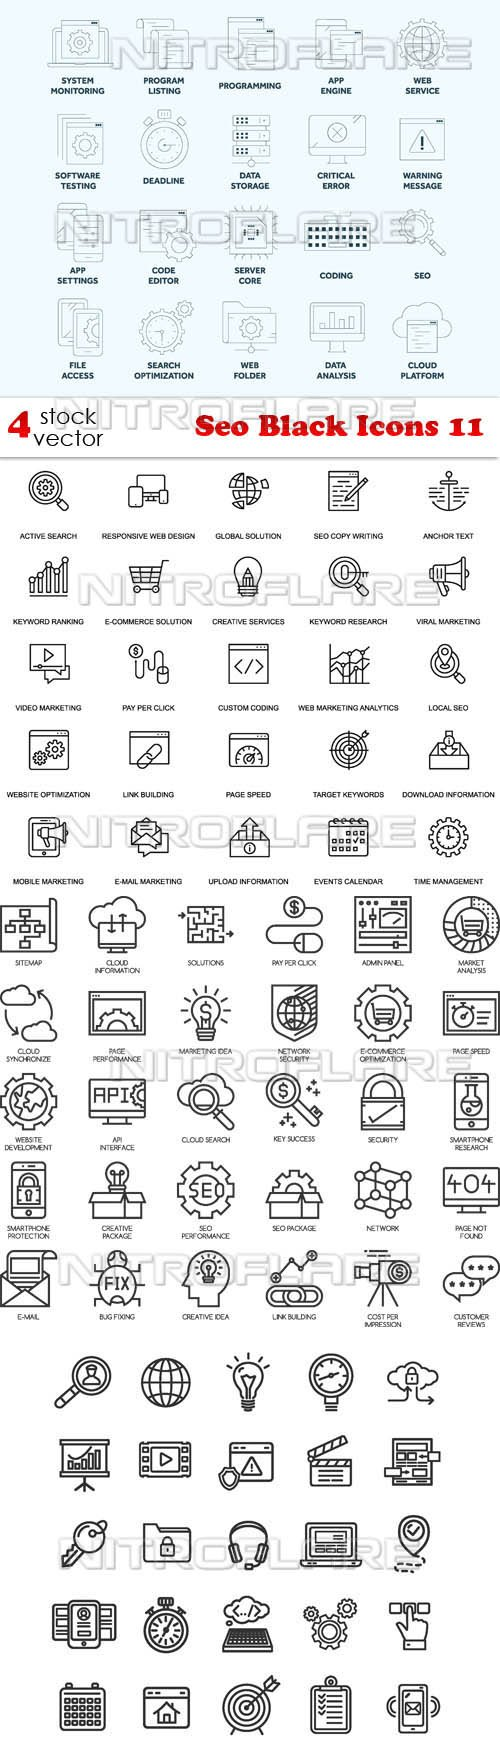 Vectors - Seo Black Icons 11